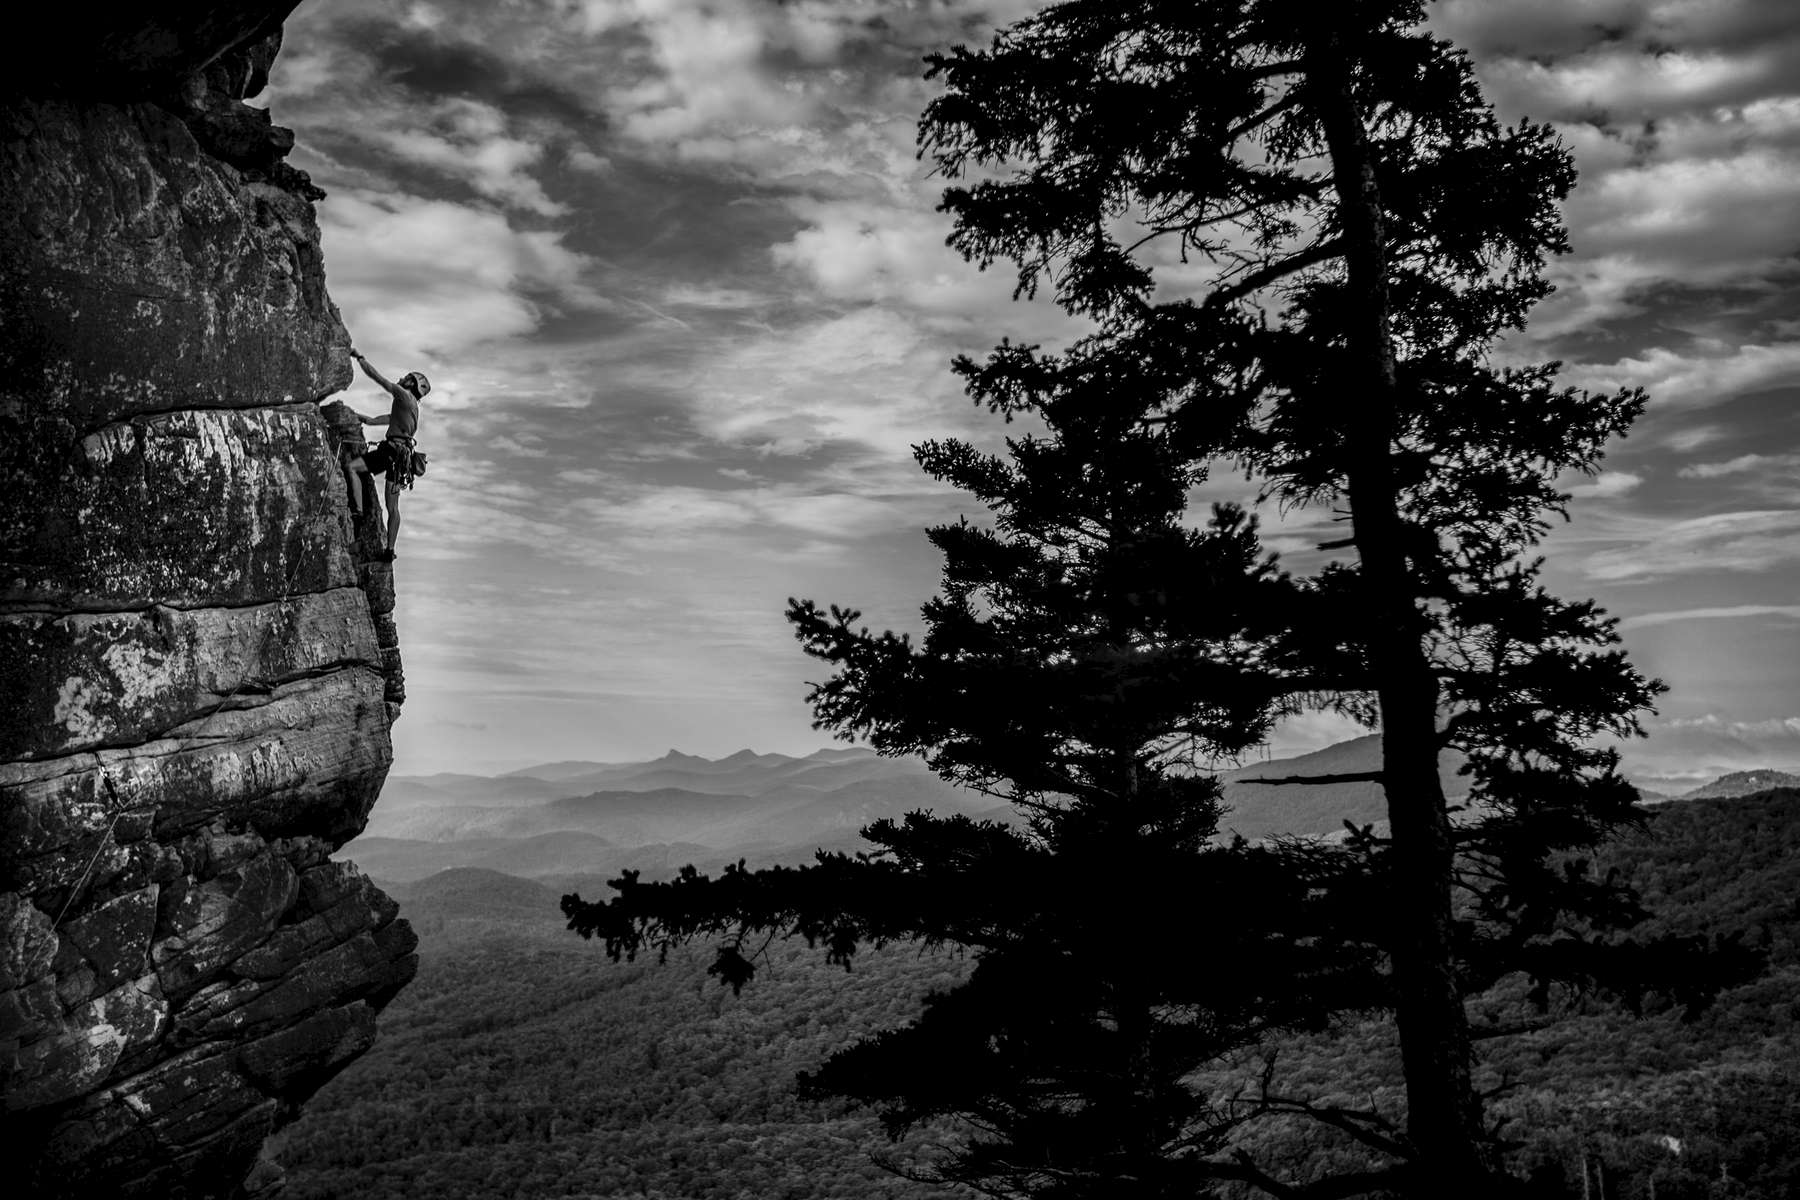 dean-roanoke-virginia-photographer-director-california-boone-rock-climbing-1